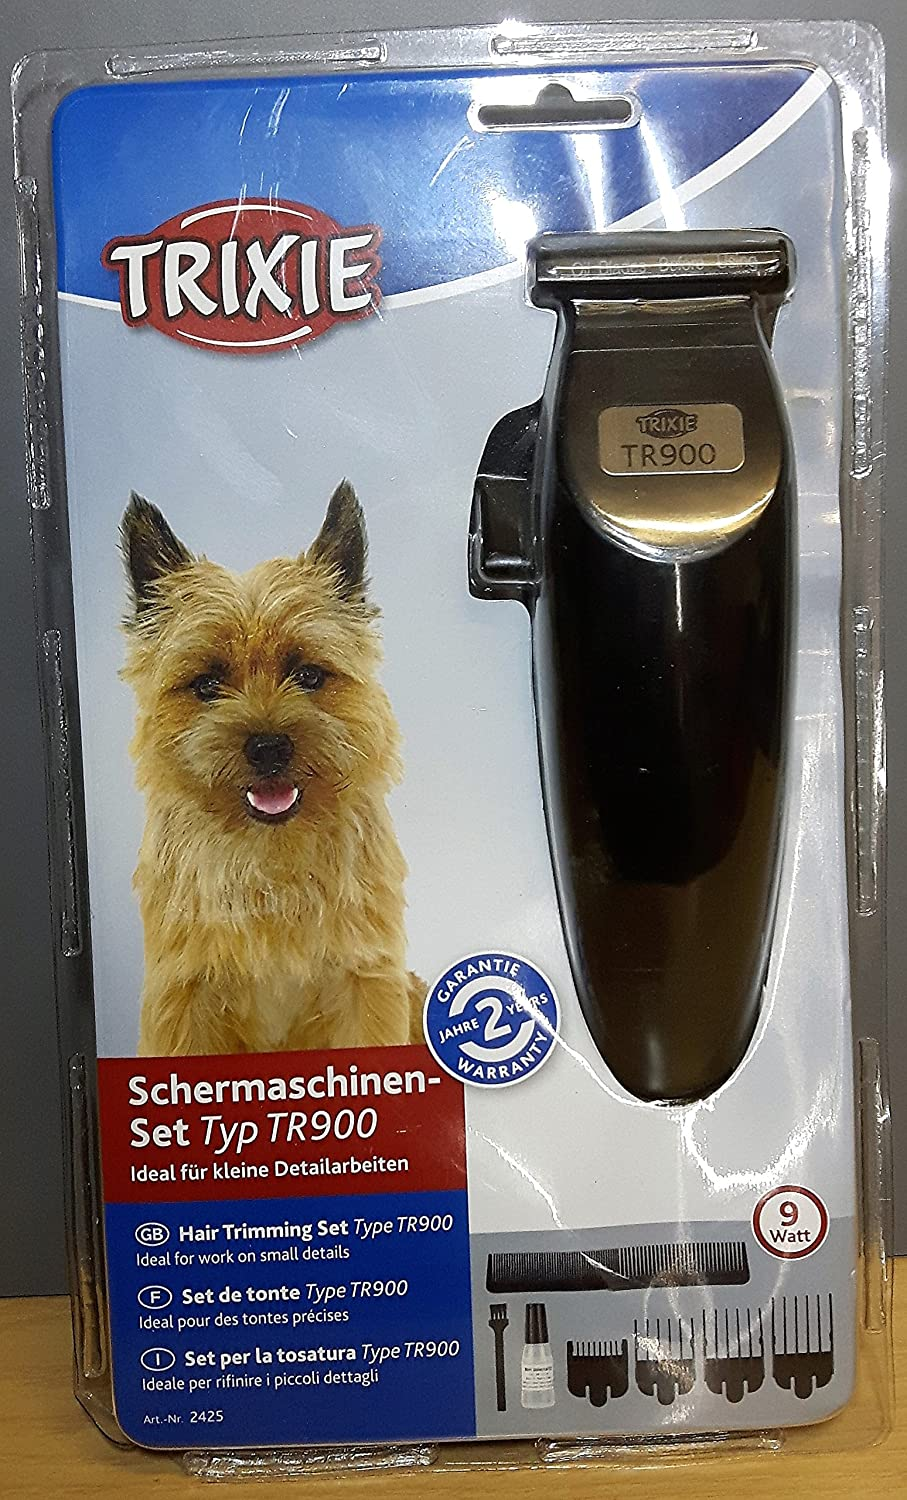 Trixie Set de Tonte TR 900 9 W Chiens 4011905024257